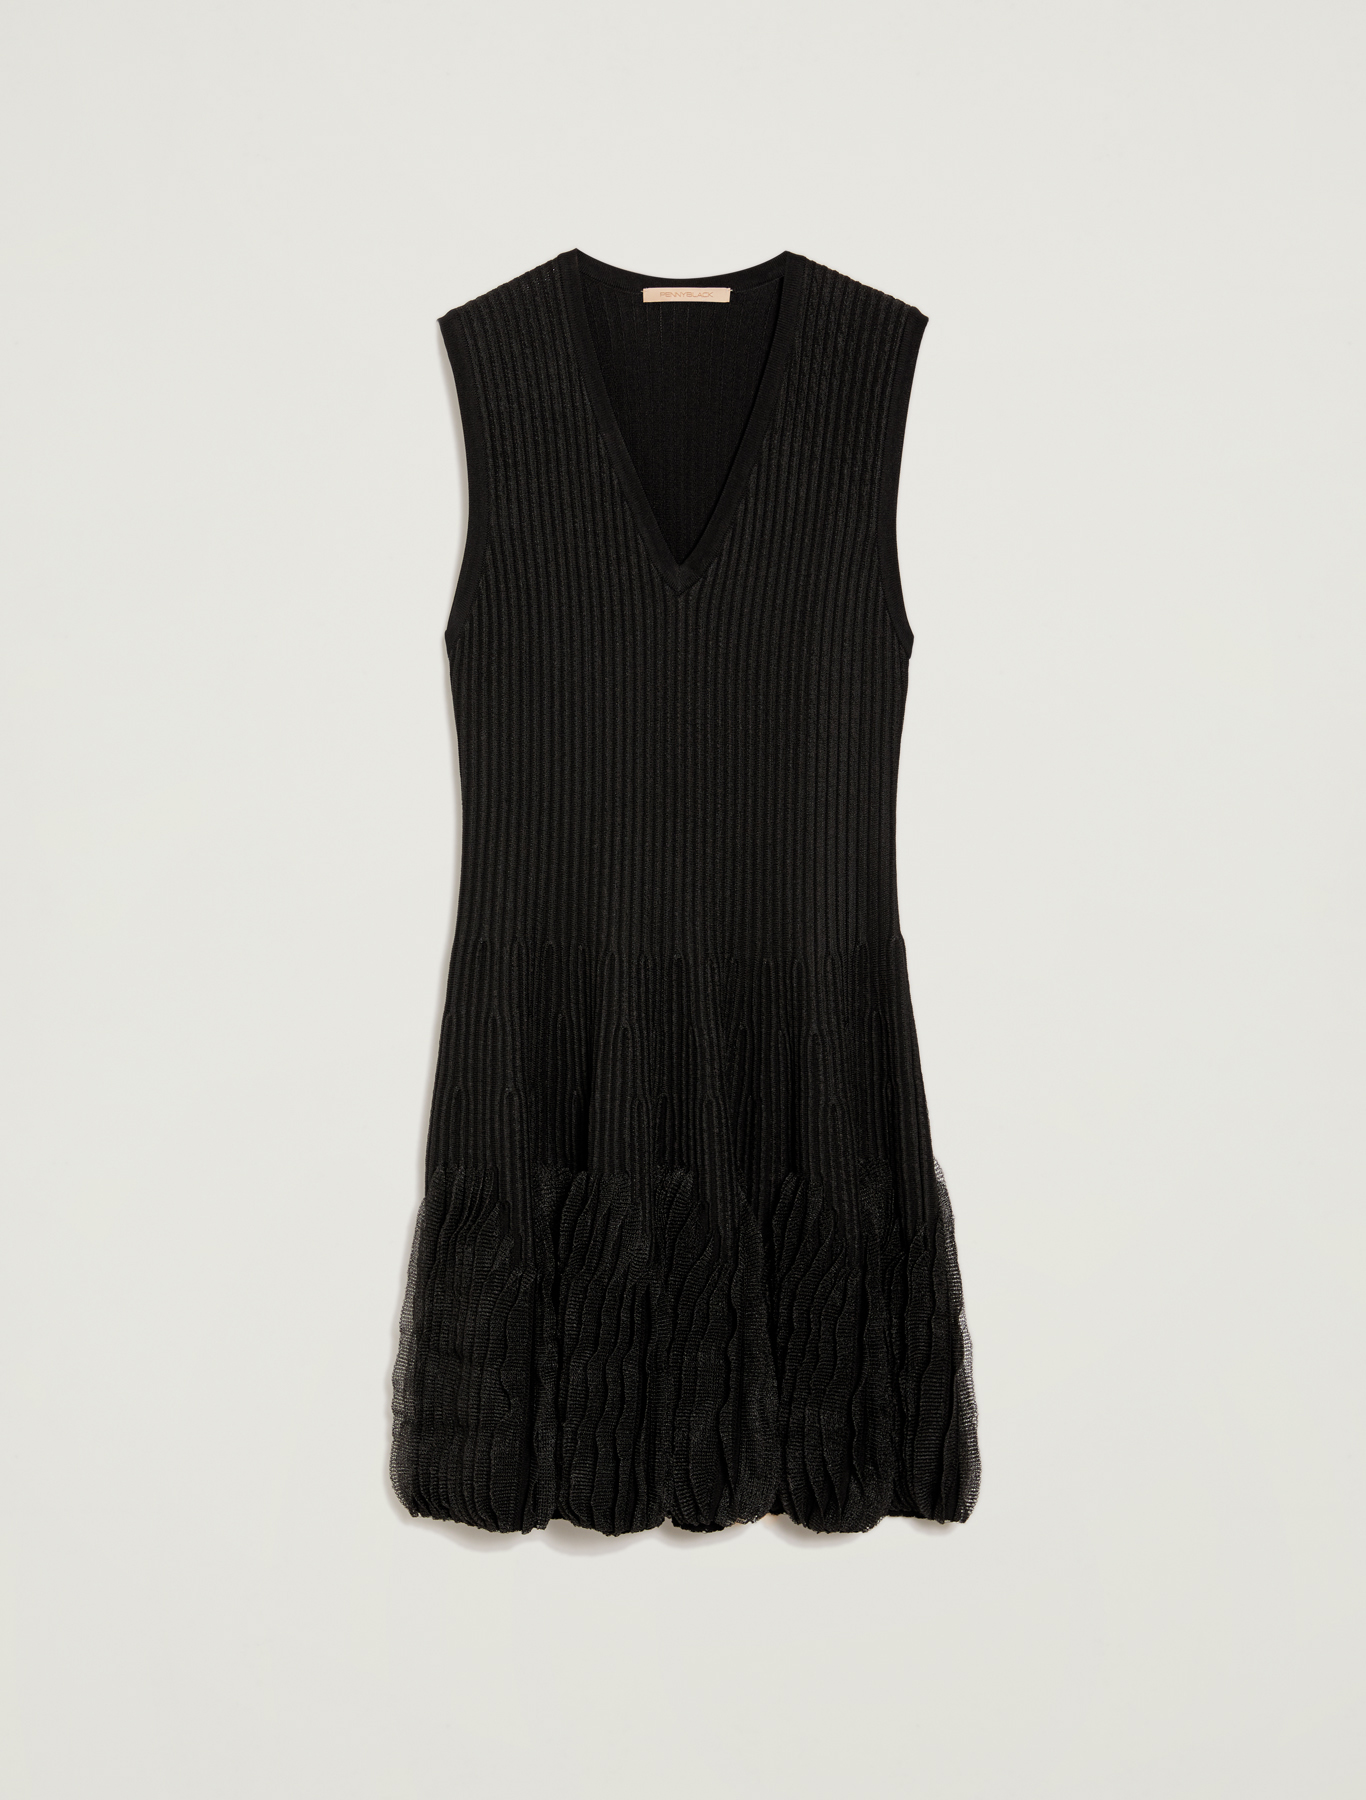 Knit dress with flounce - black - pennyblack